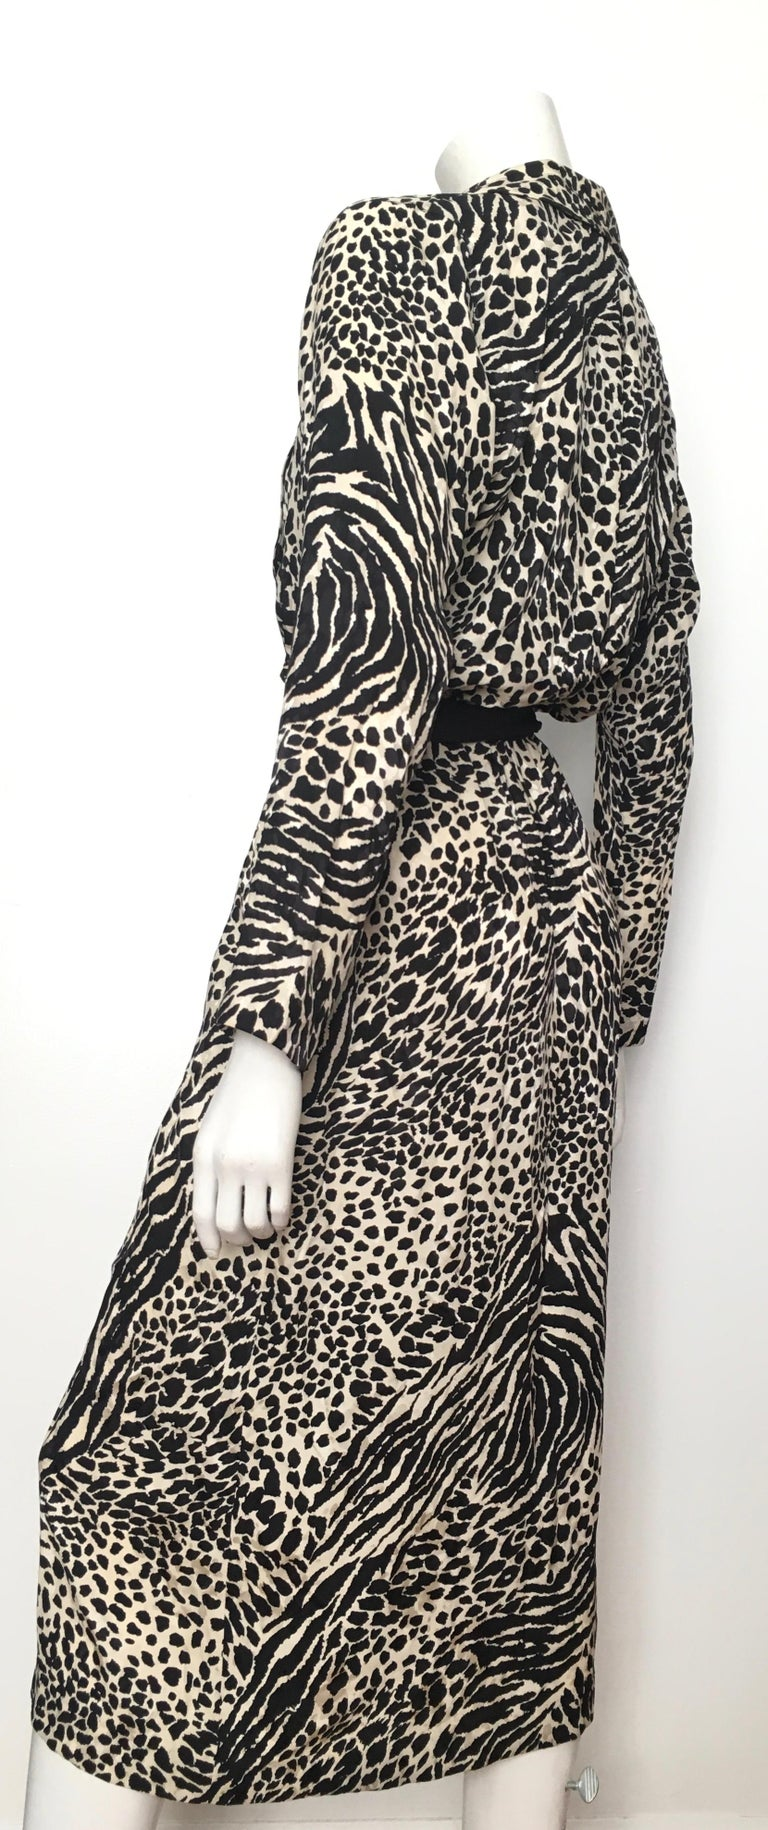 Geoffrey Beene for Lillie Rubin 1980 Animal Print Silk Dress Size 6. For Sale 2